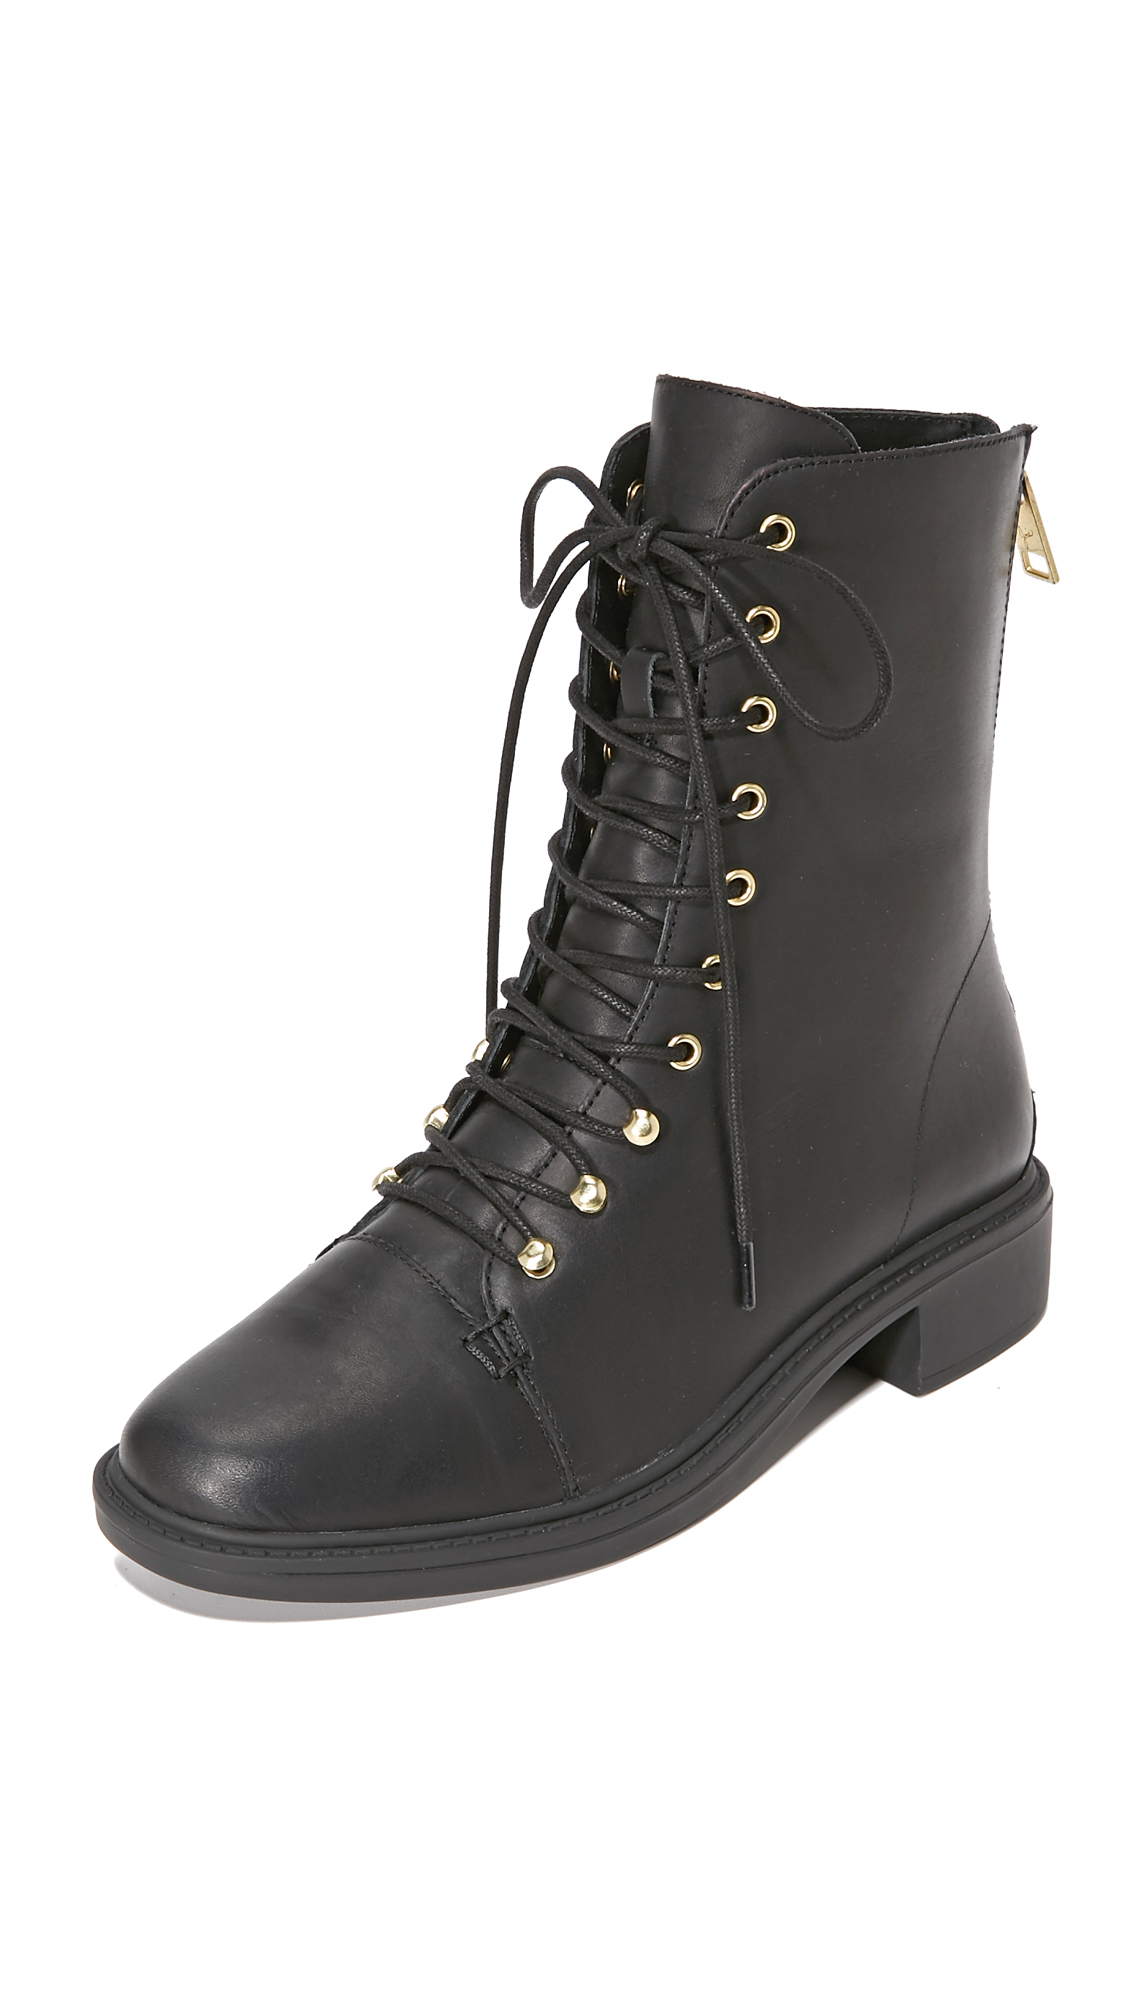 Joie Hartlyn Combat Boots - Black at Shopbop